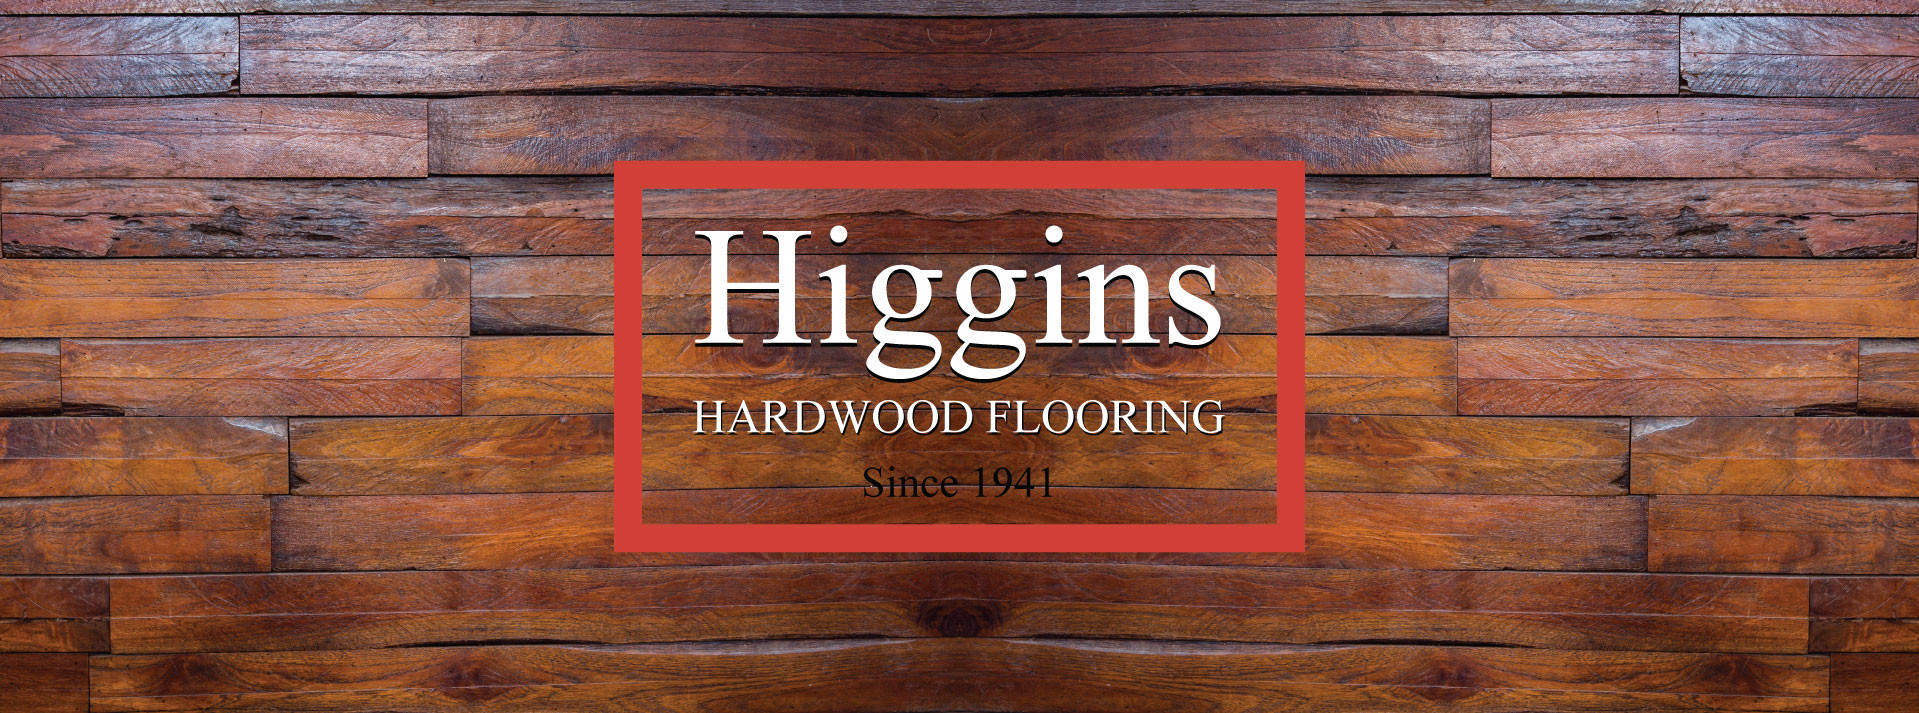 hardwood floor specialist near me of higgins hardwood flooring in peterborough oshawa lindsay ajax intended for office hours